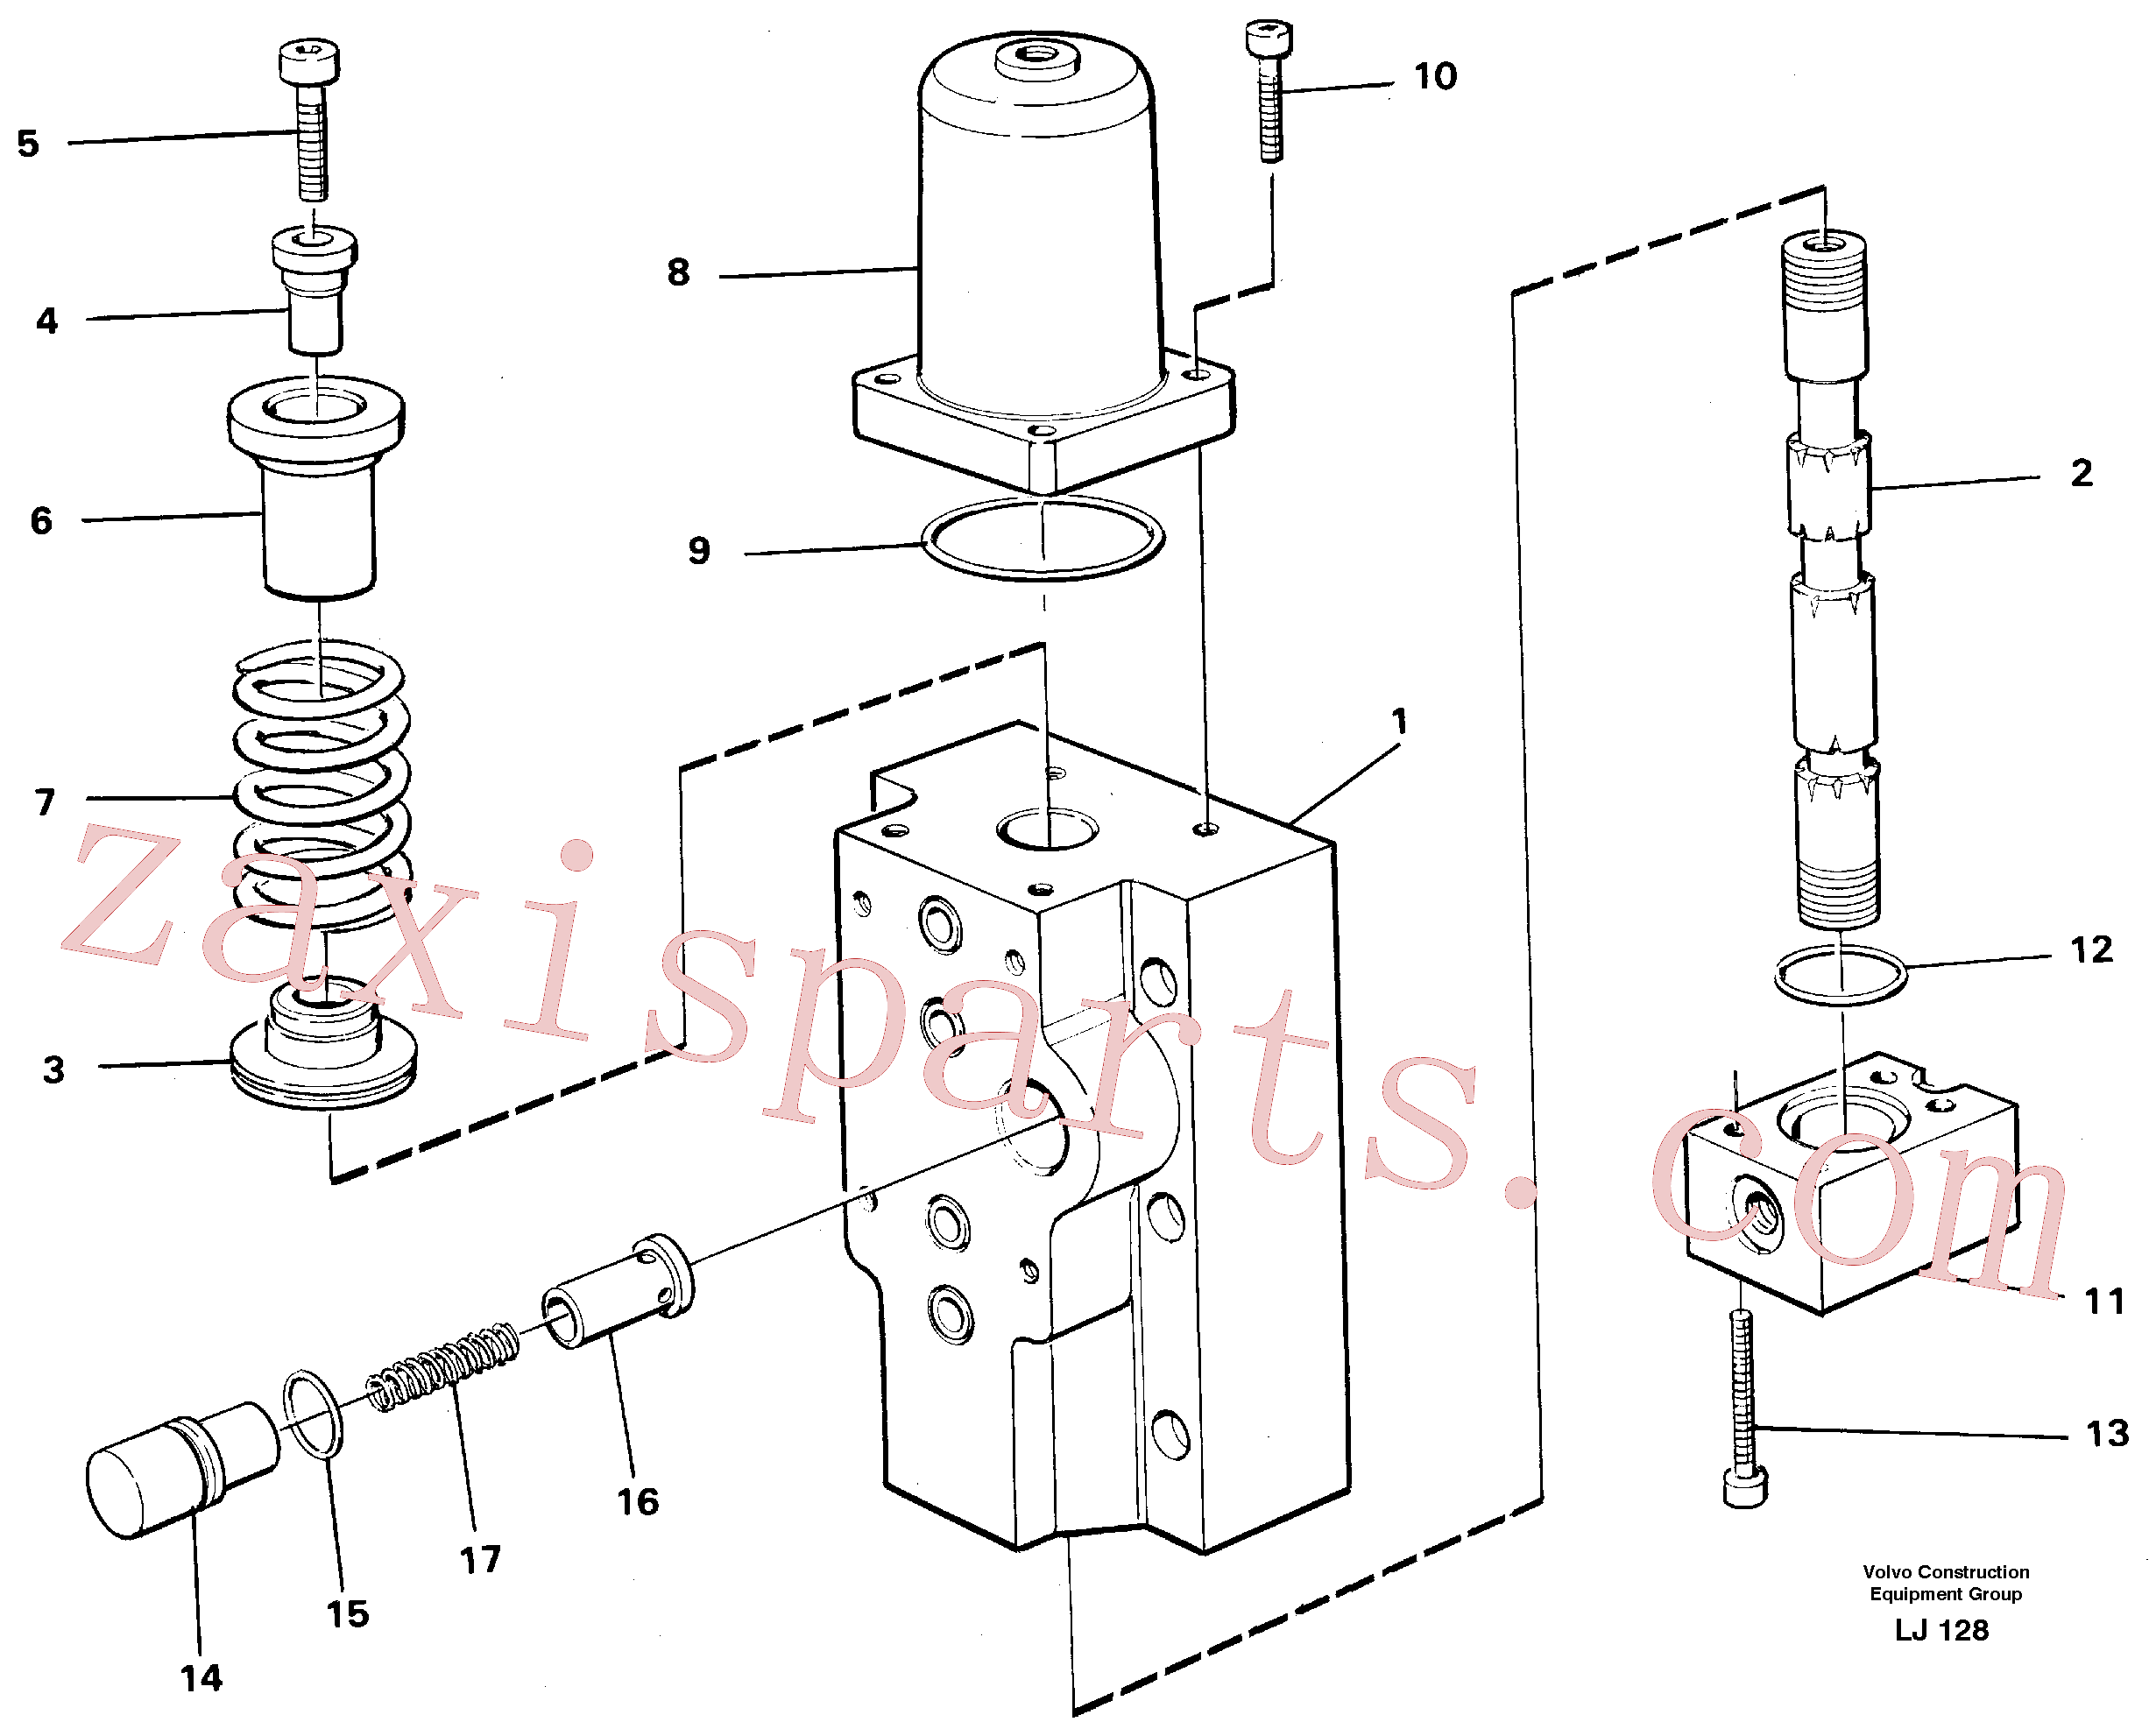 VOE14048558 for Volvo Four-way valves Primary, Four-way valve for hammer/shears(LJ128 assembly)